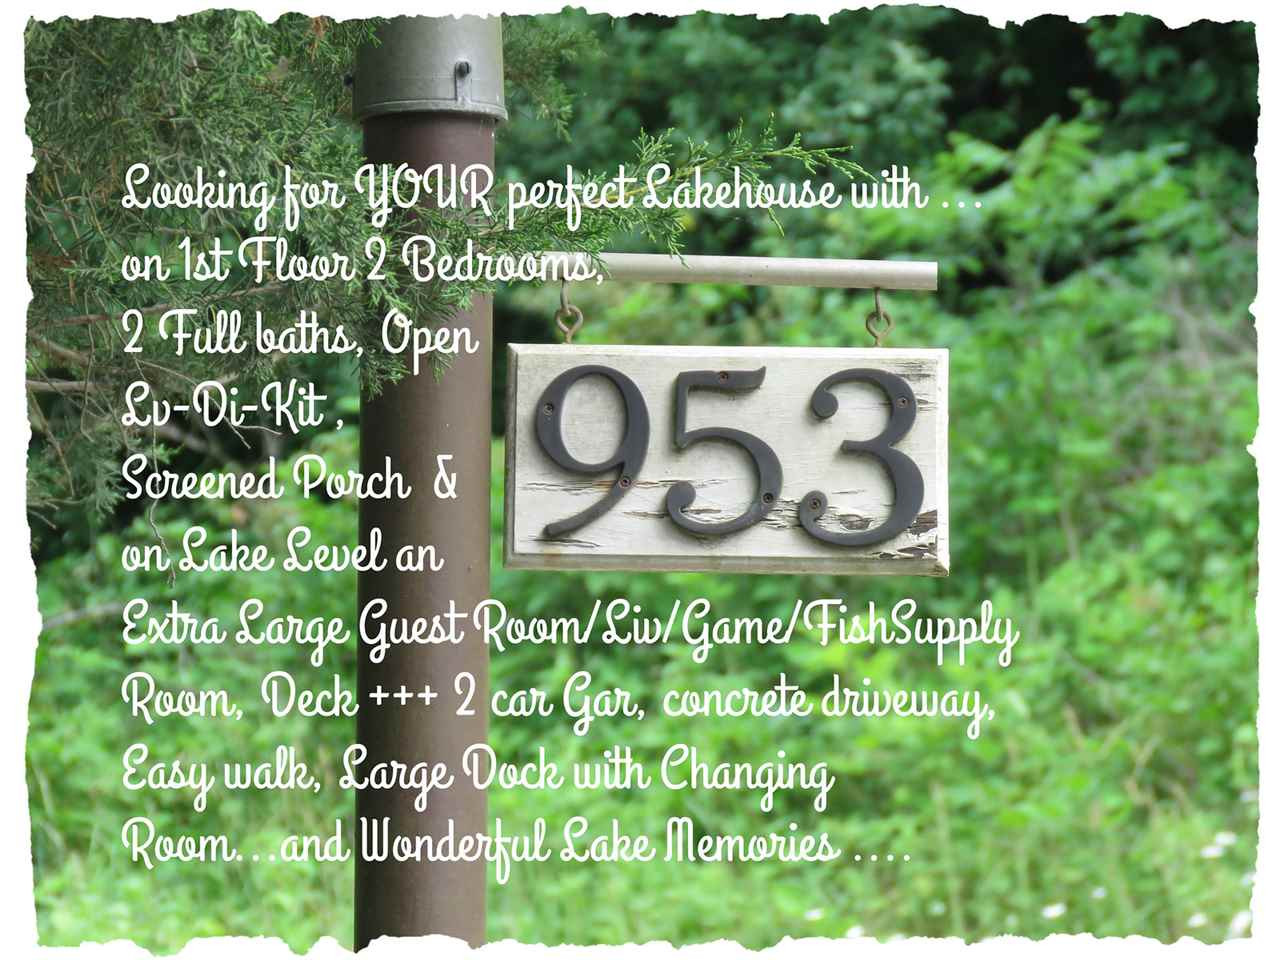 Lot #953 @ 445 Elk Lake Resort Rd Owenton KY